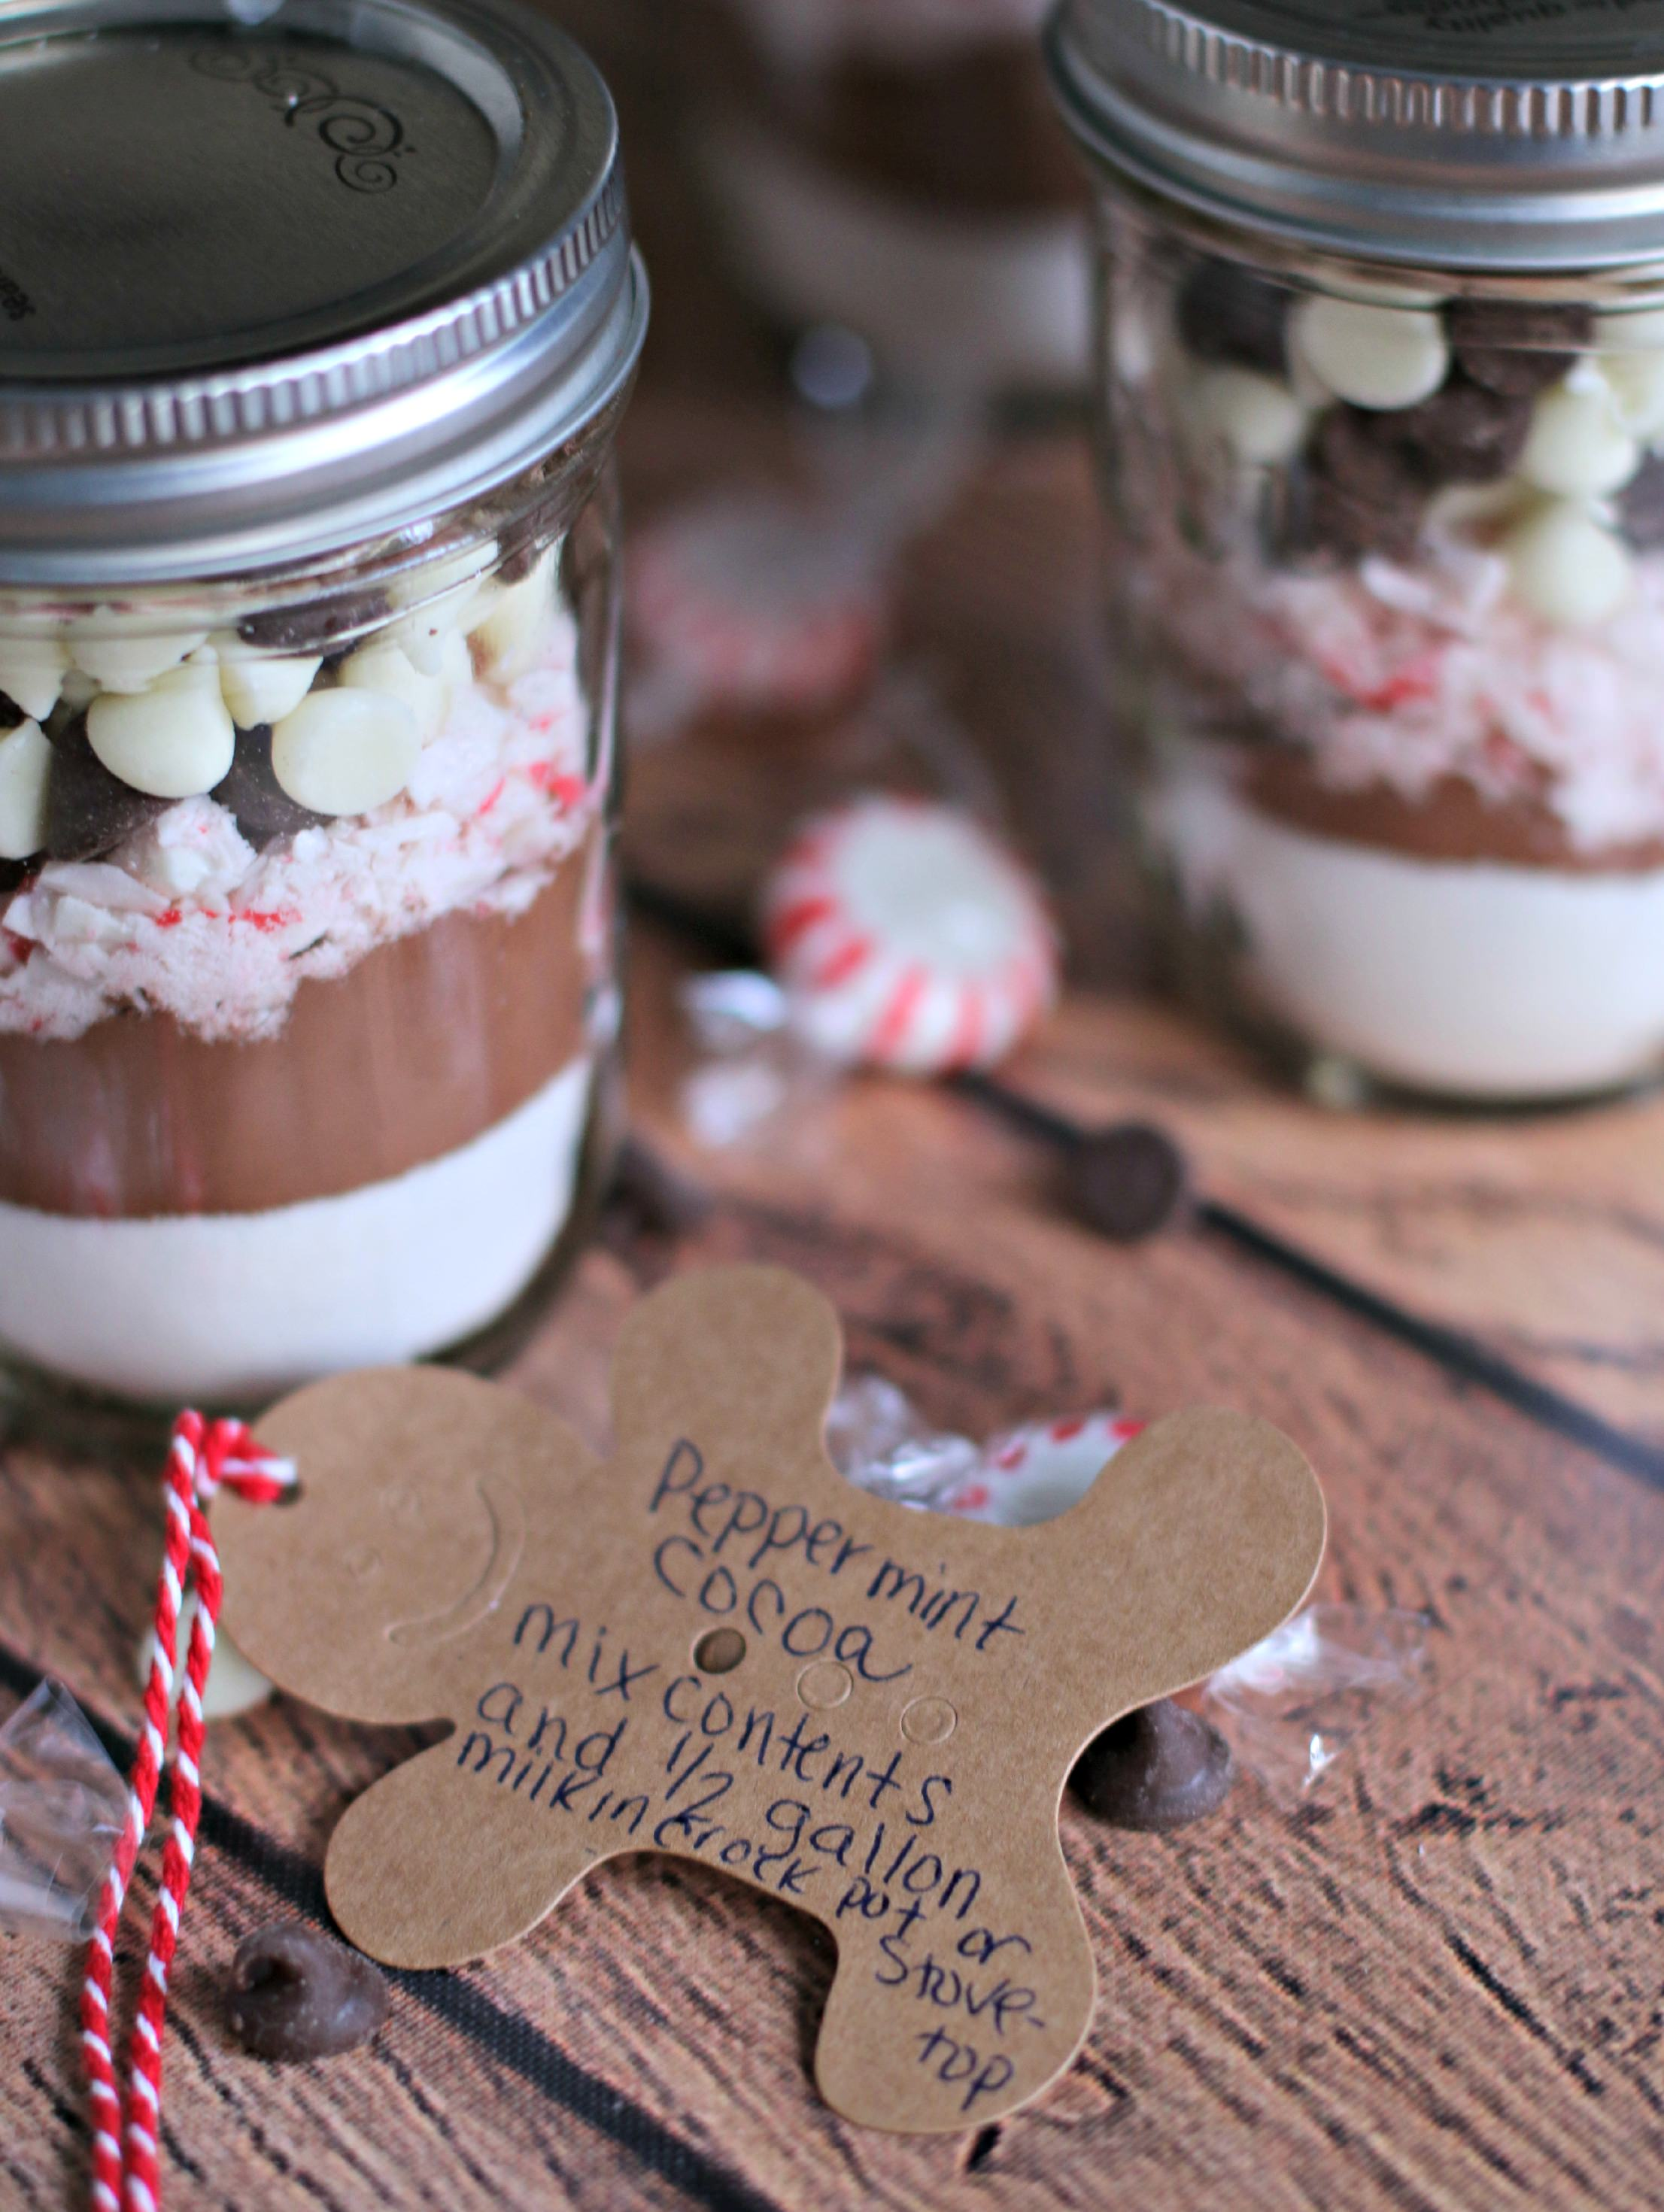 Labels for how to make hot cocoa mix from jar